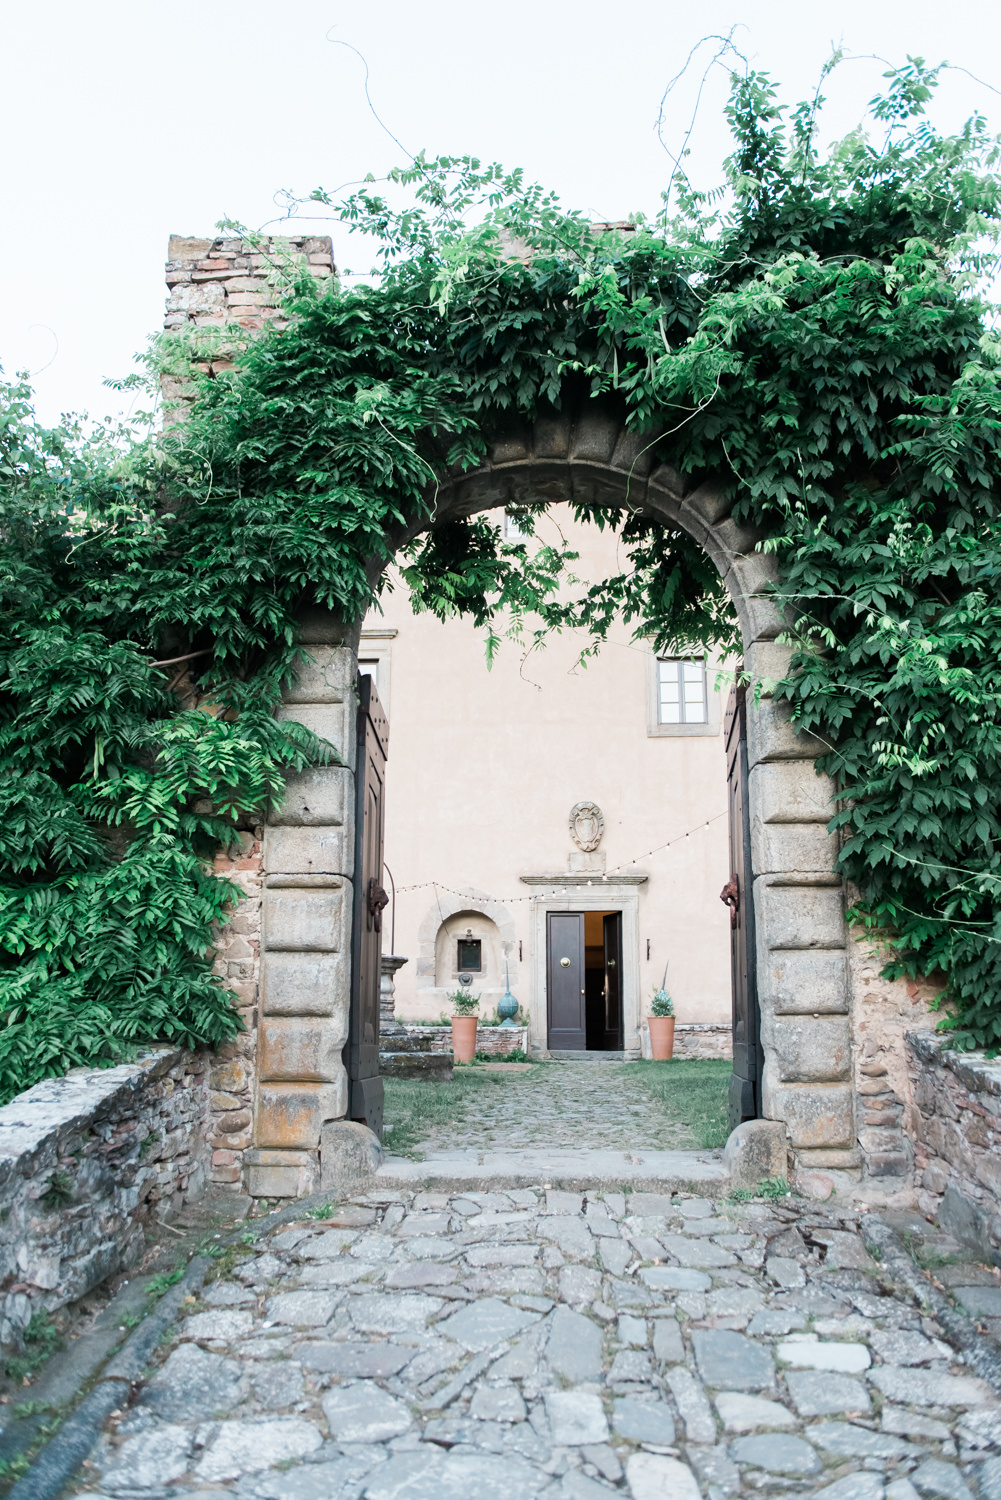 One of the gates of Castello di Potentino shot by a destination wedding photographer in Italy